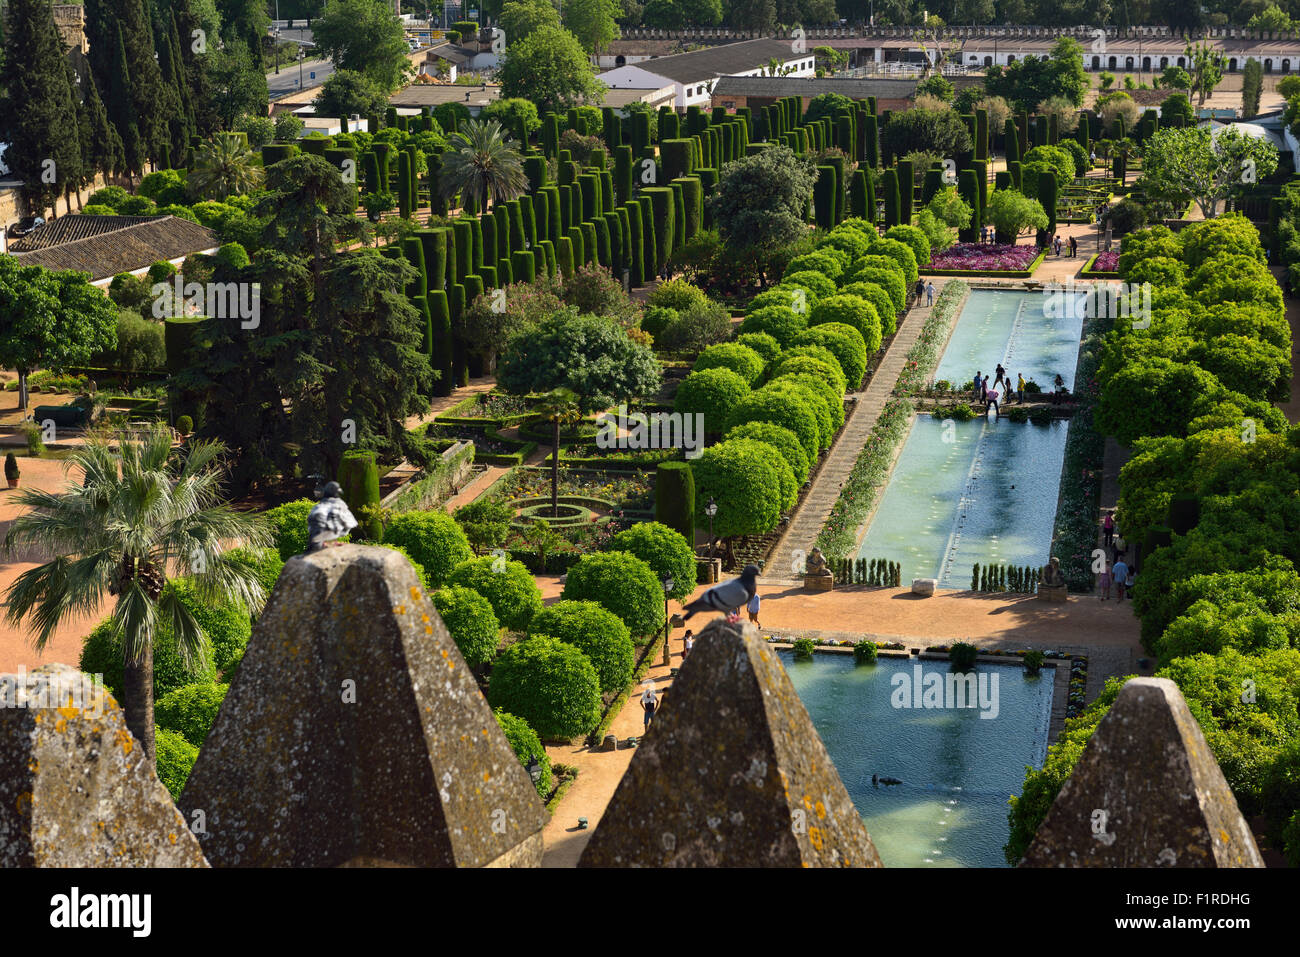 View of gardens and ponds through Tower of Lions merlons Alcazar Cordoba Andalusia Spain - Stock Image